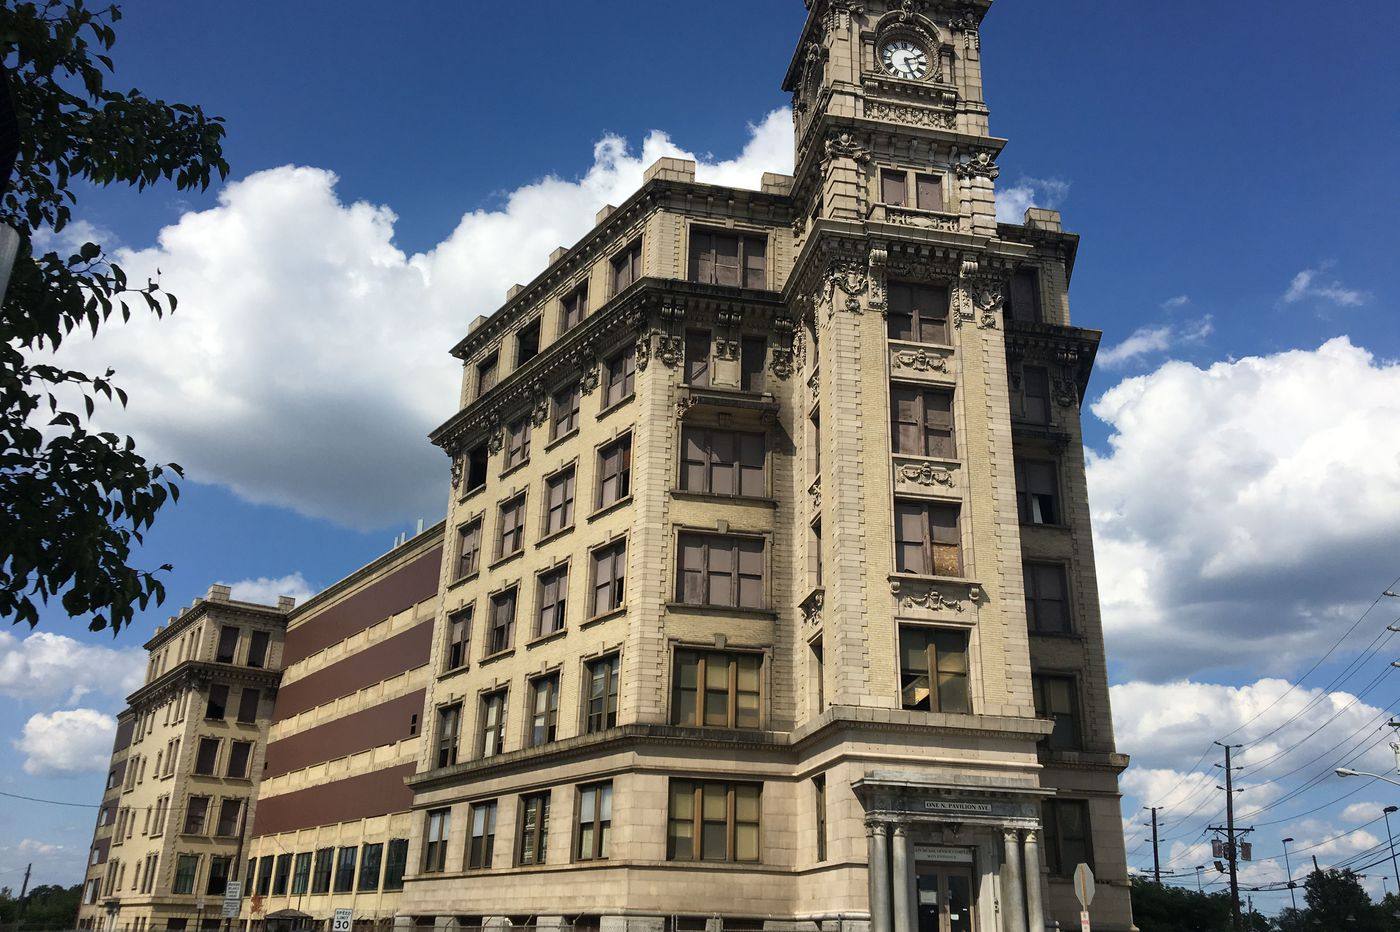 Work is underway at a historic South Jersey building. Are luxury apartments far behind?